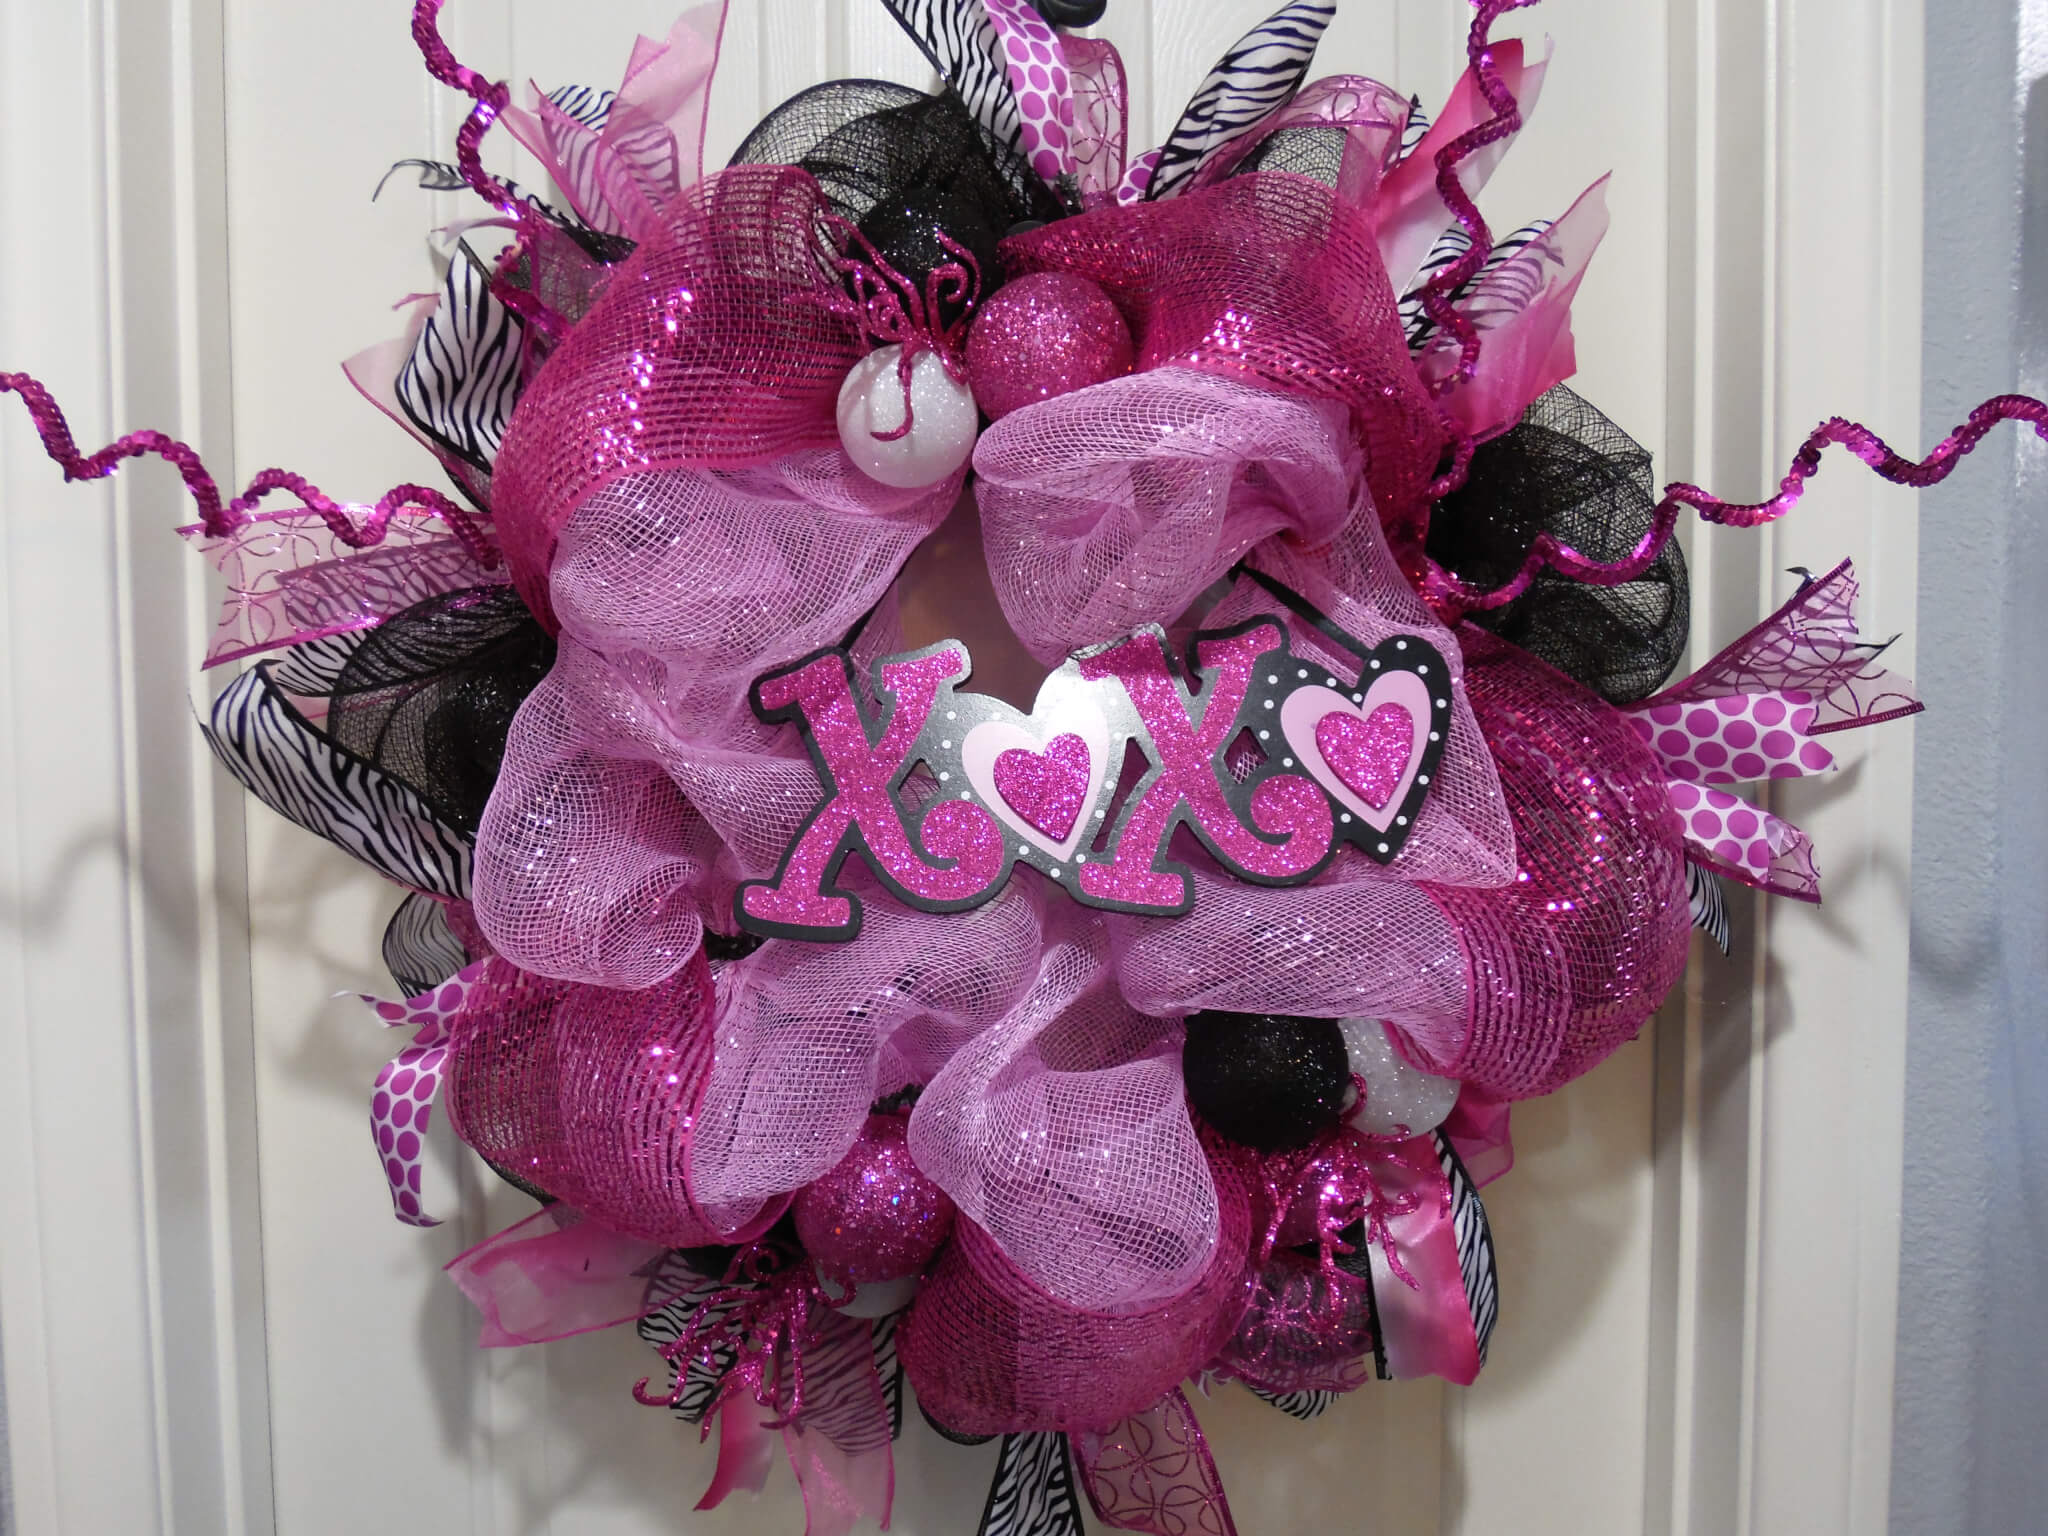 Valentines Day Wild Love XOXO Zebra Print Wreath